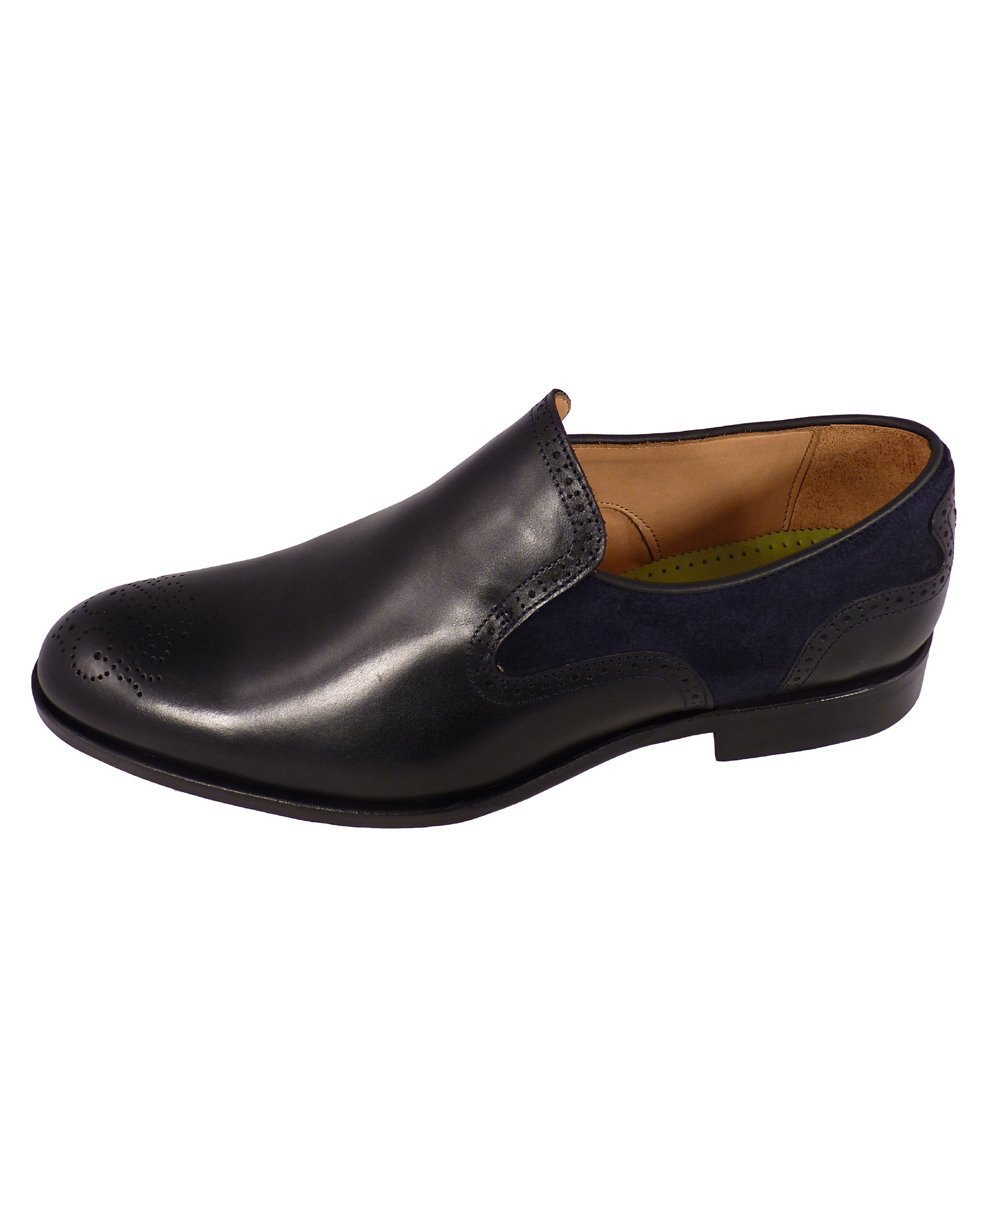 Free shipping and returns on Men's Blue Loafers & Slip-Ons at liveblog.ga